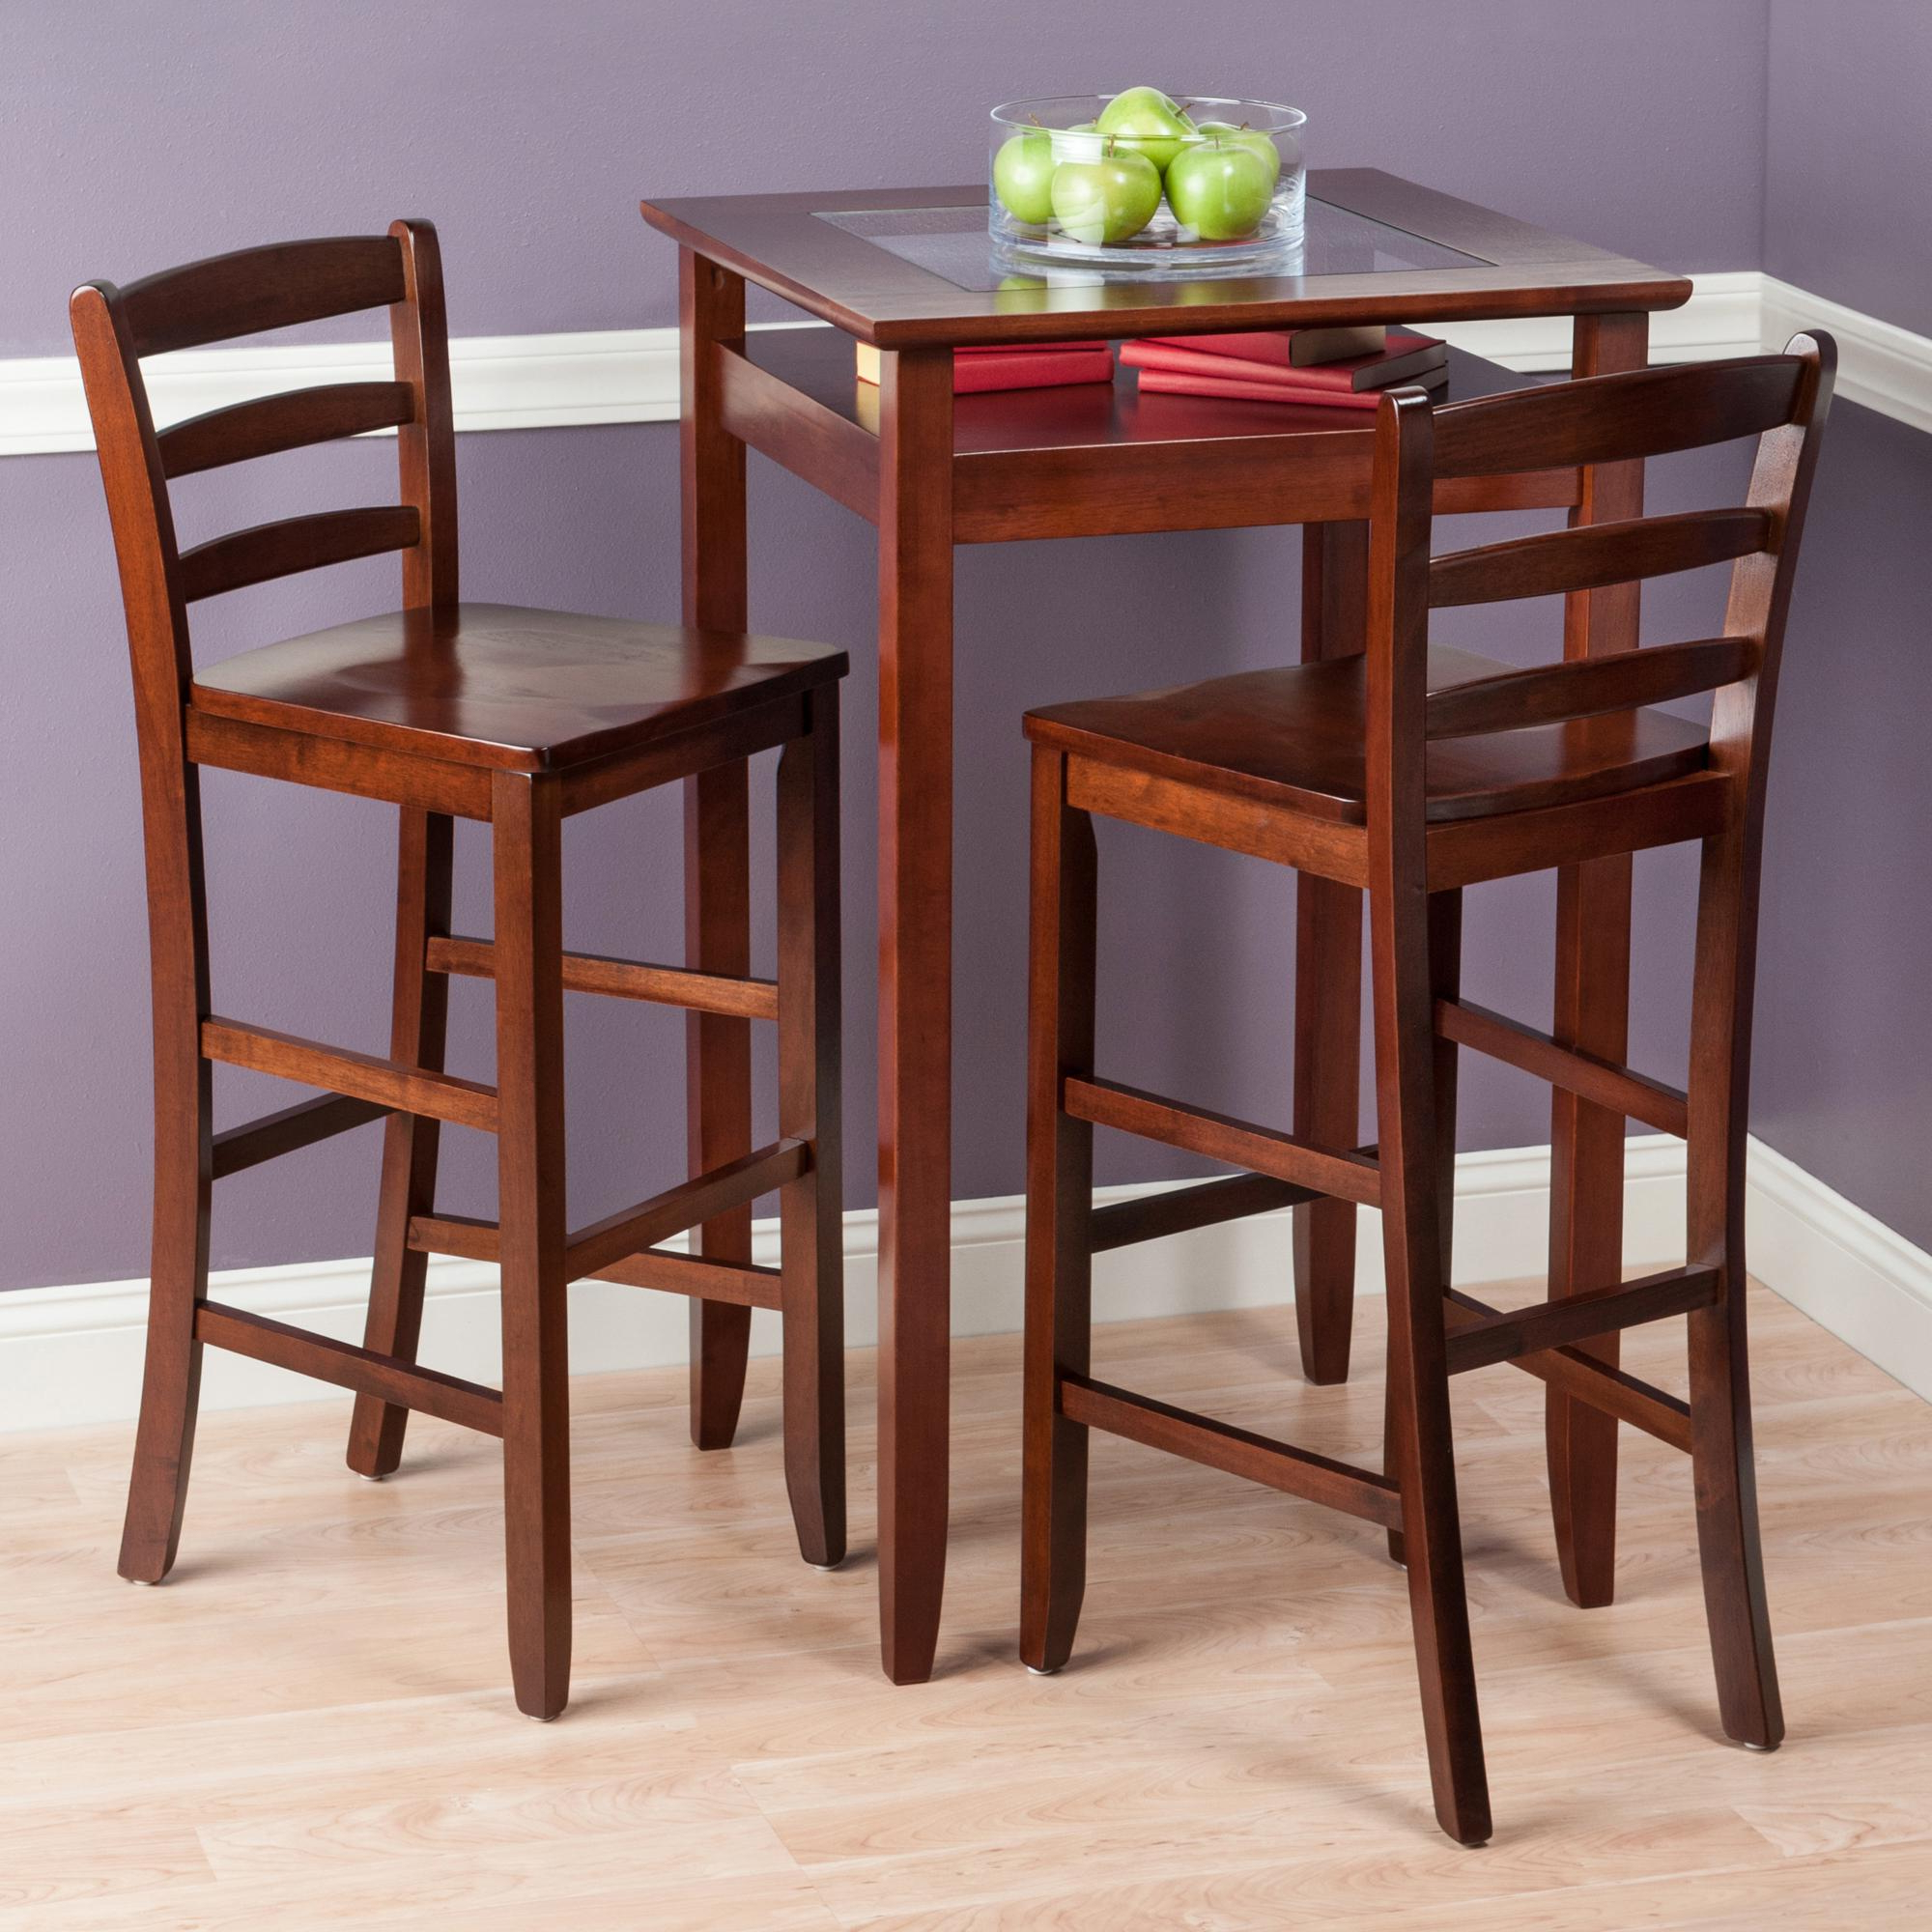 Amazon: Winsome Wood 94386 Halo Back Stool: Kitchen & Dining Regarding Most Recent Winsome 3 Piece Counter Height Dining Sets (View 11 of 25)